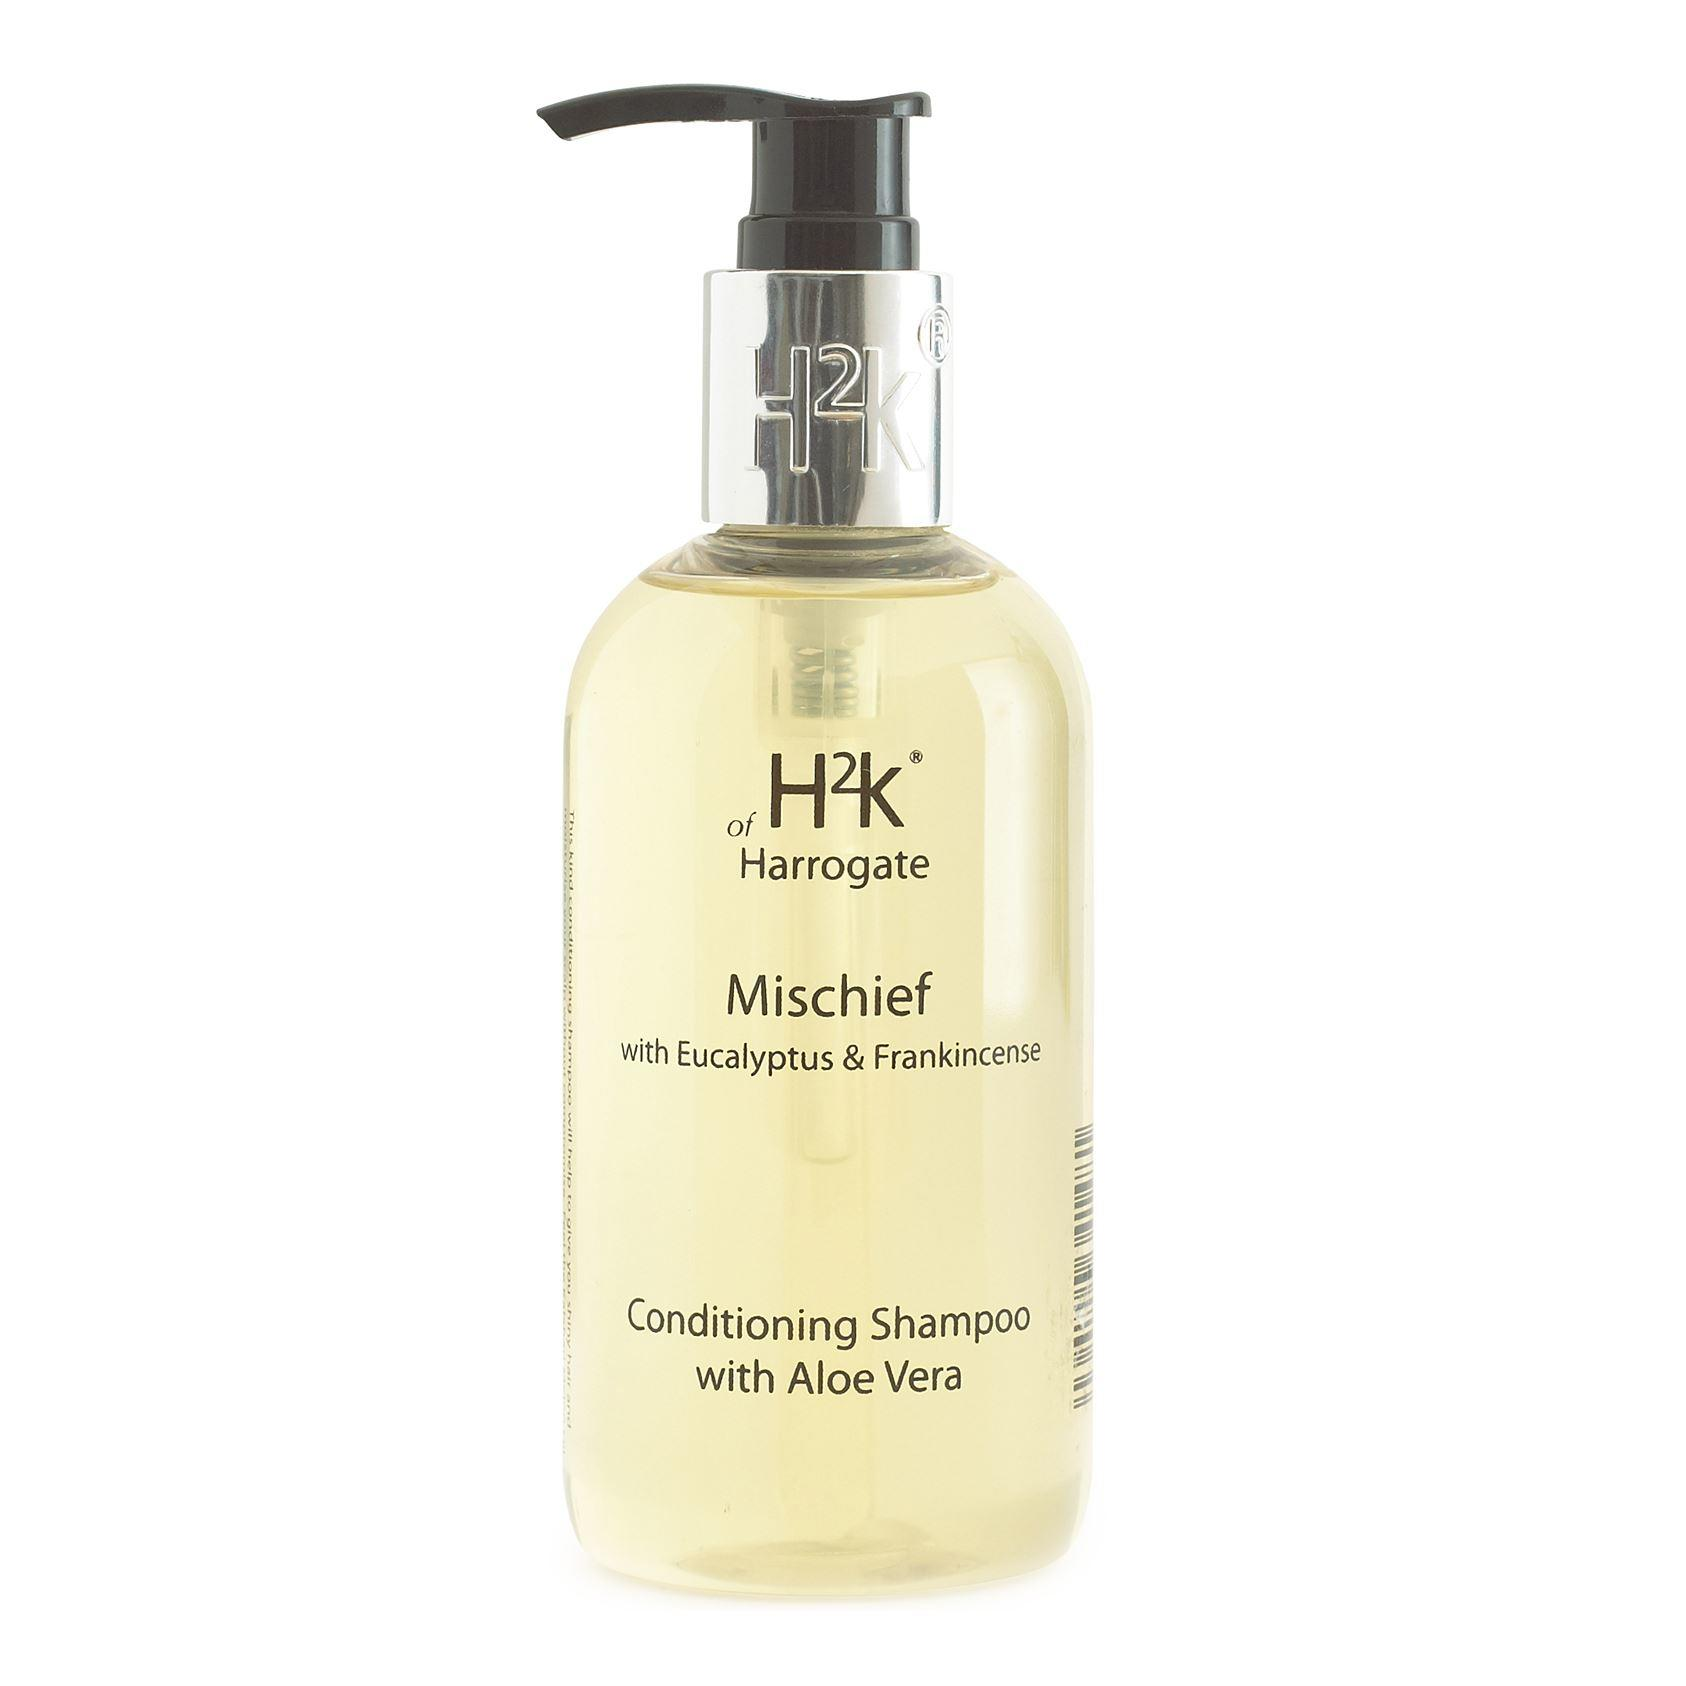 H2K Mischief Regular, 250ml Conditioning Shampoo